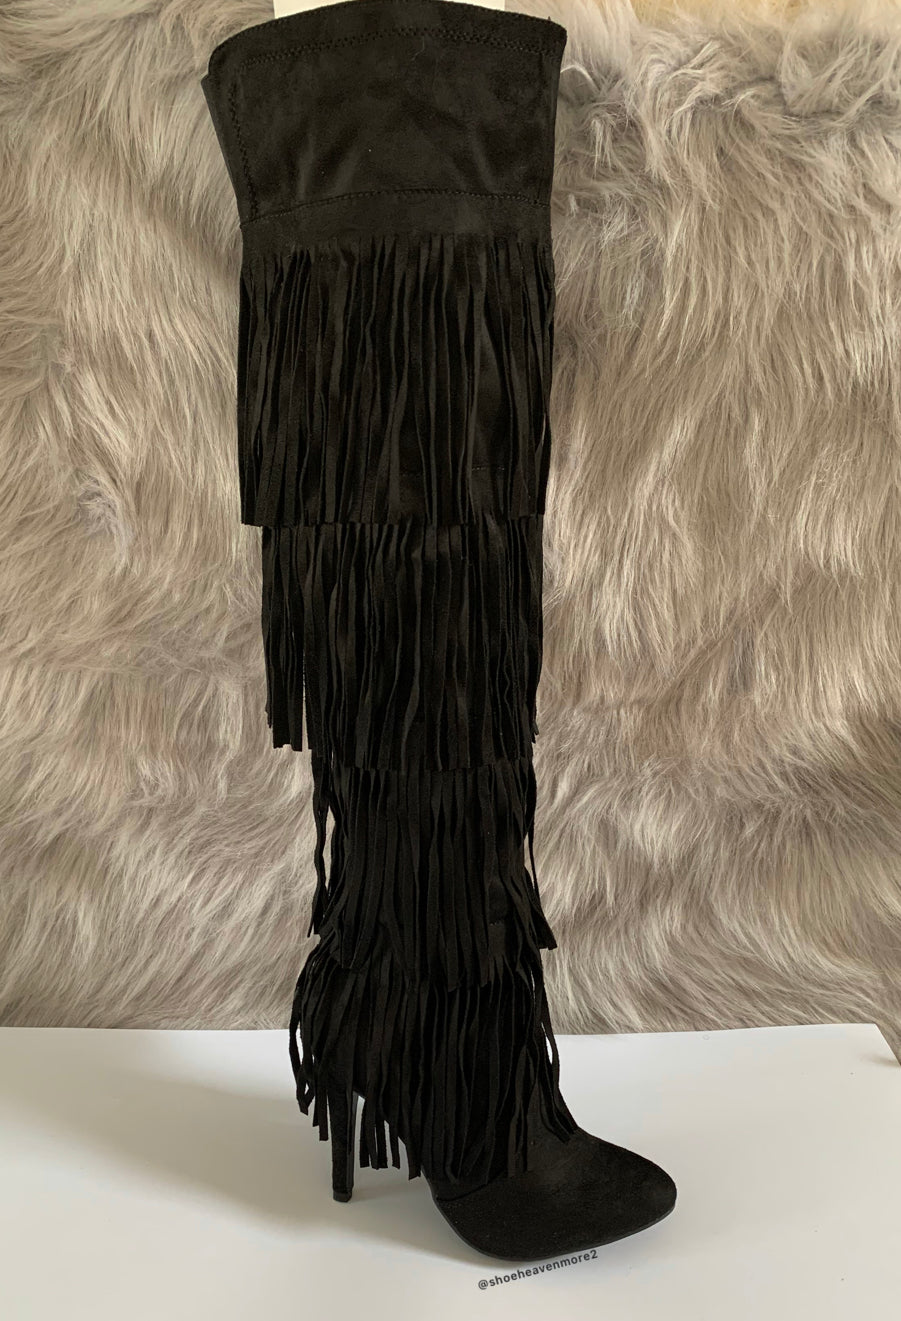 Black Fringe Thigh High Boots